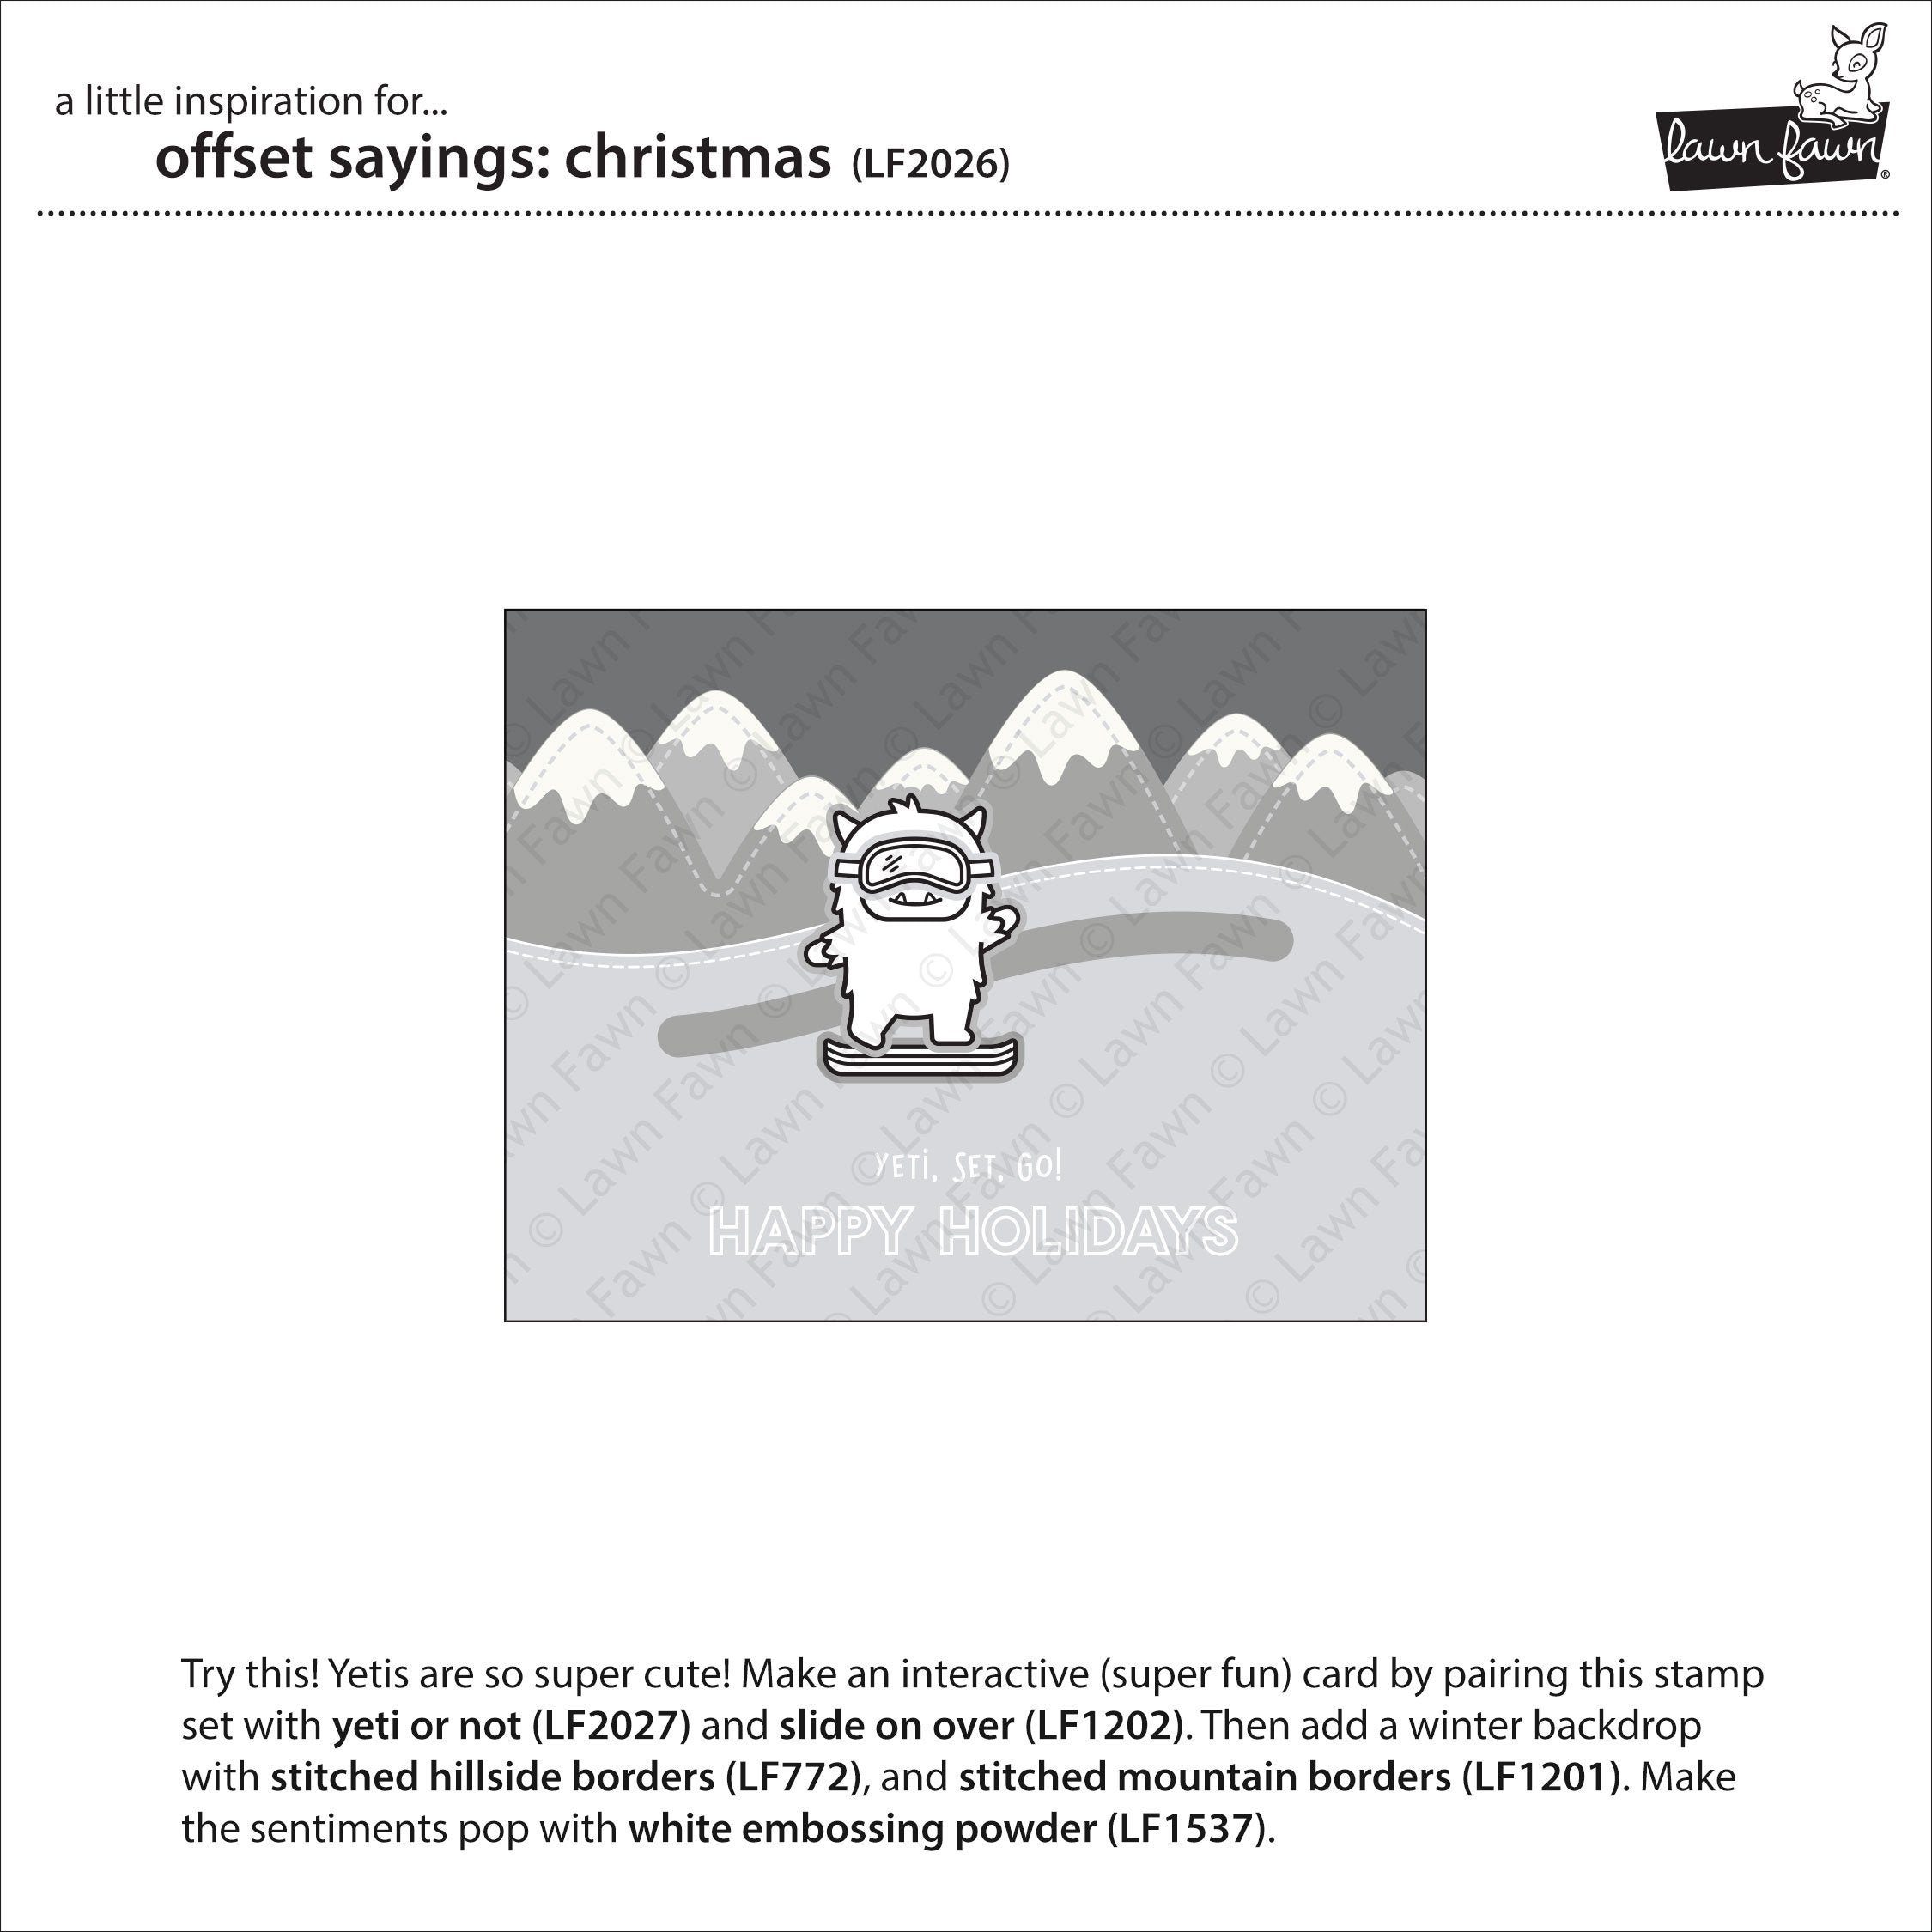 offset sayings: christmas